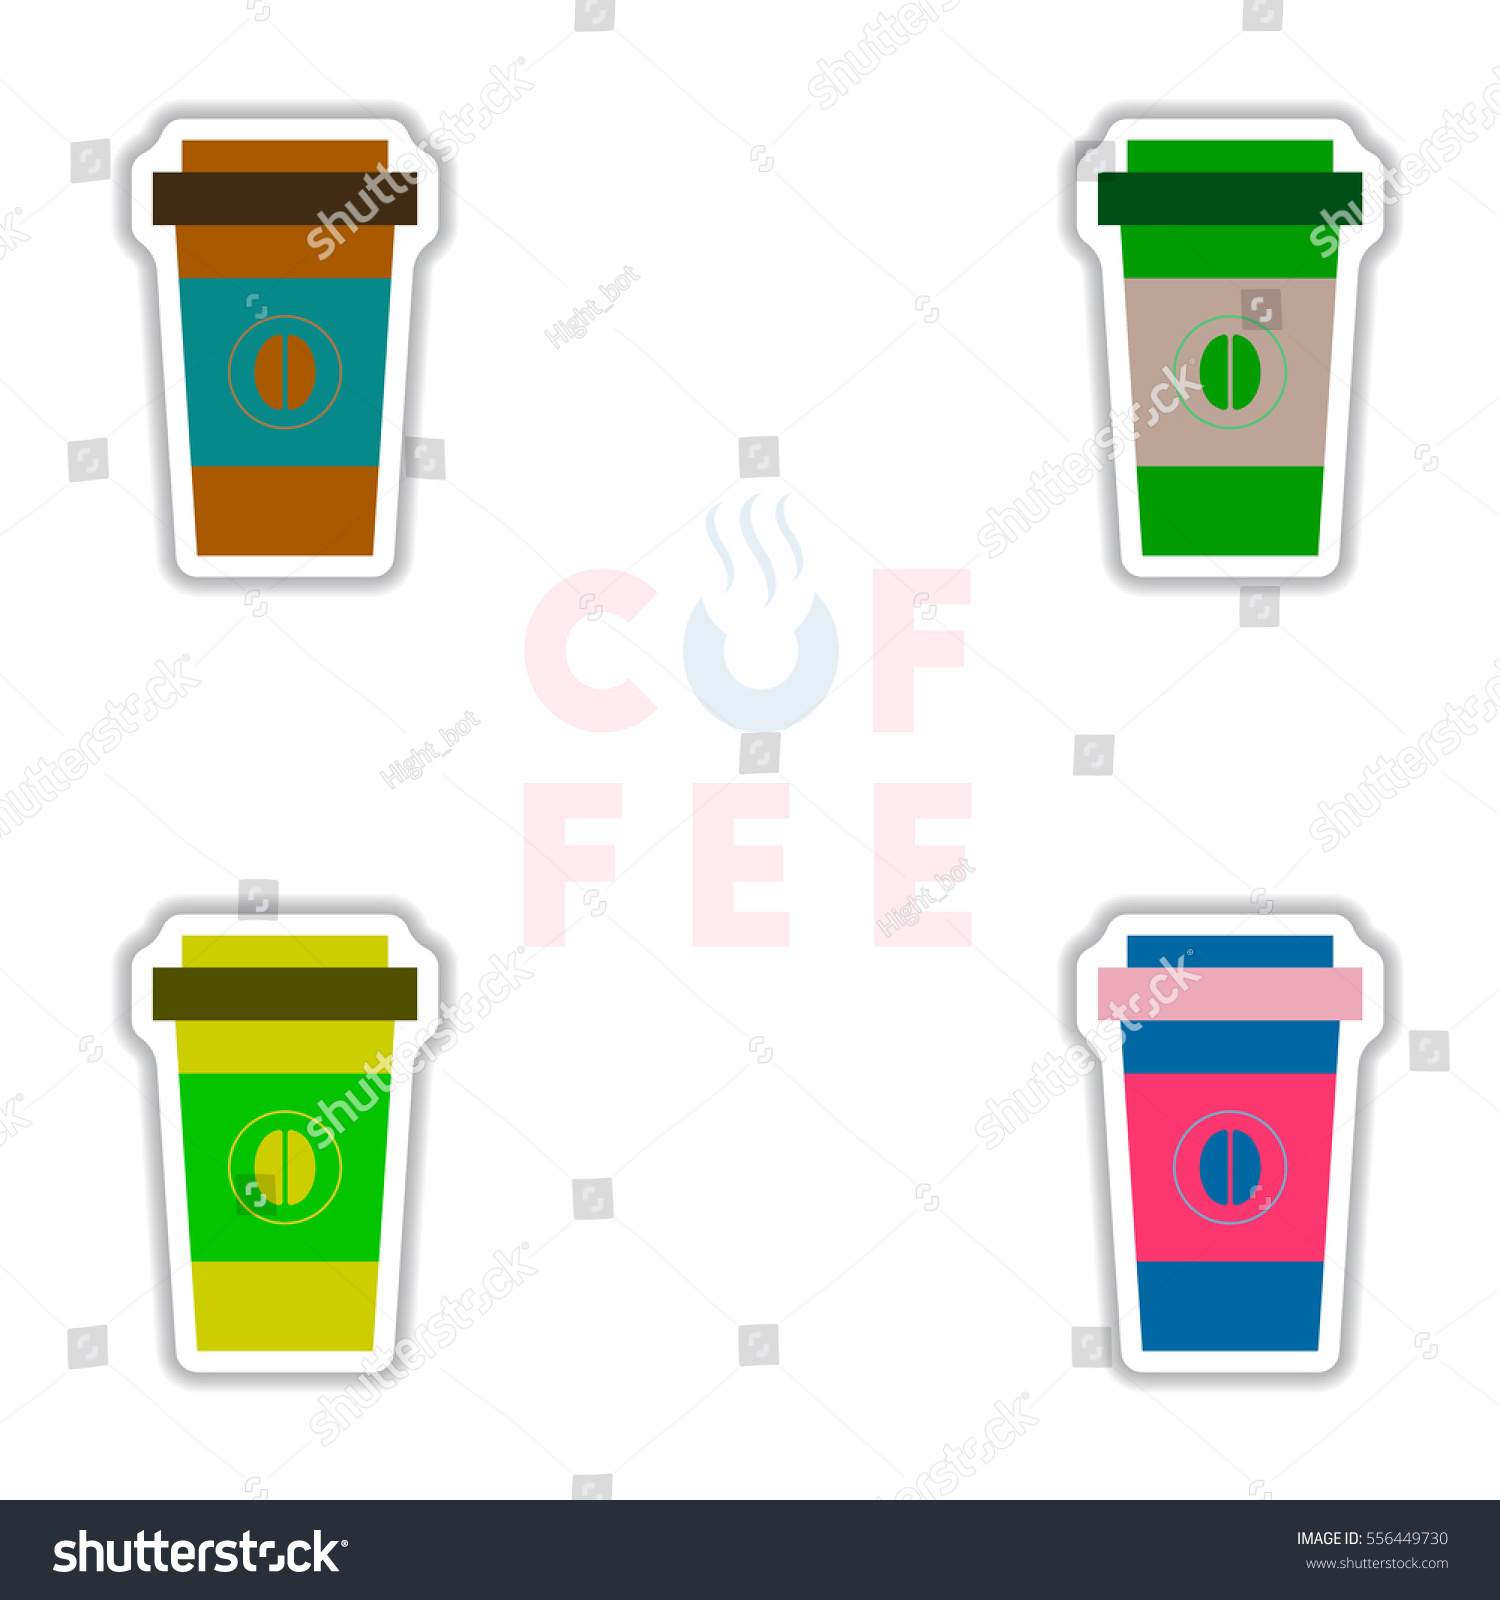 Label Frames Badges Vector Icon Design Stock Vector (Royalty Free ...